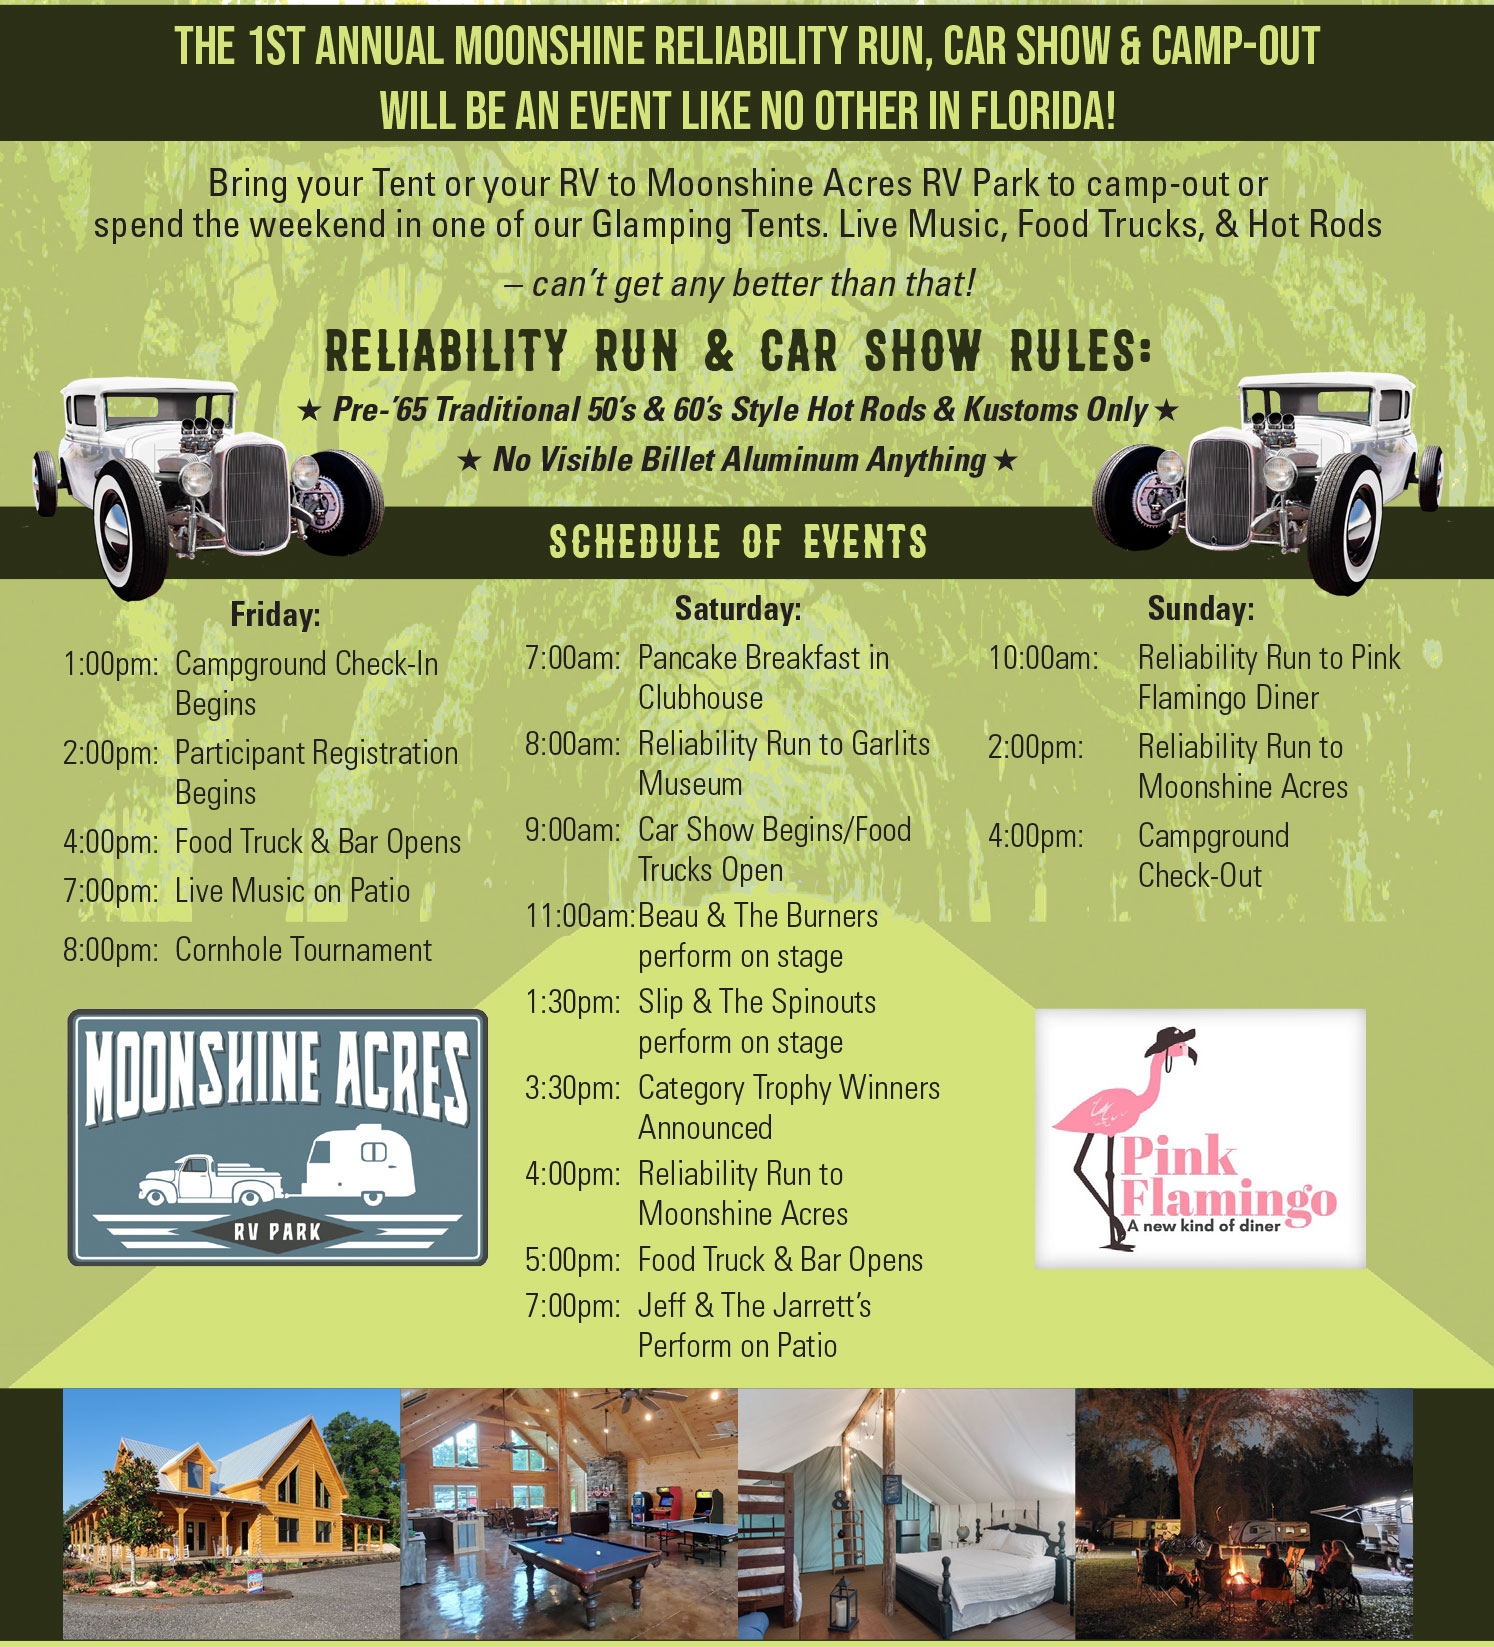 Moonshine Reliability Run Car Show & Camp Out